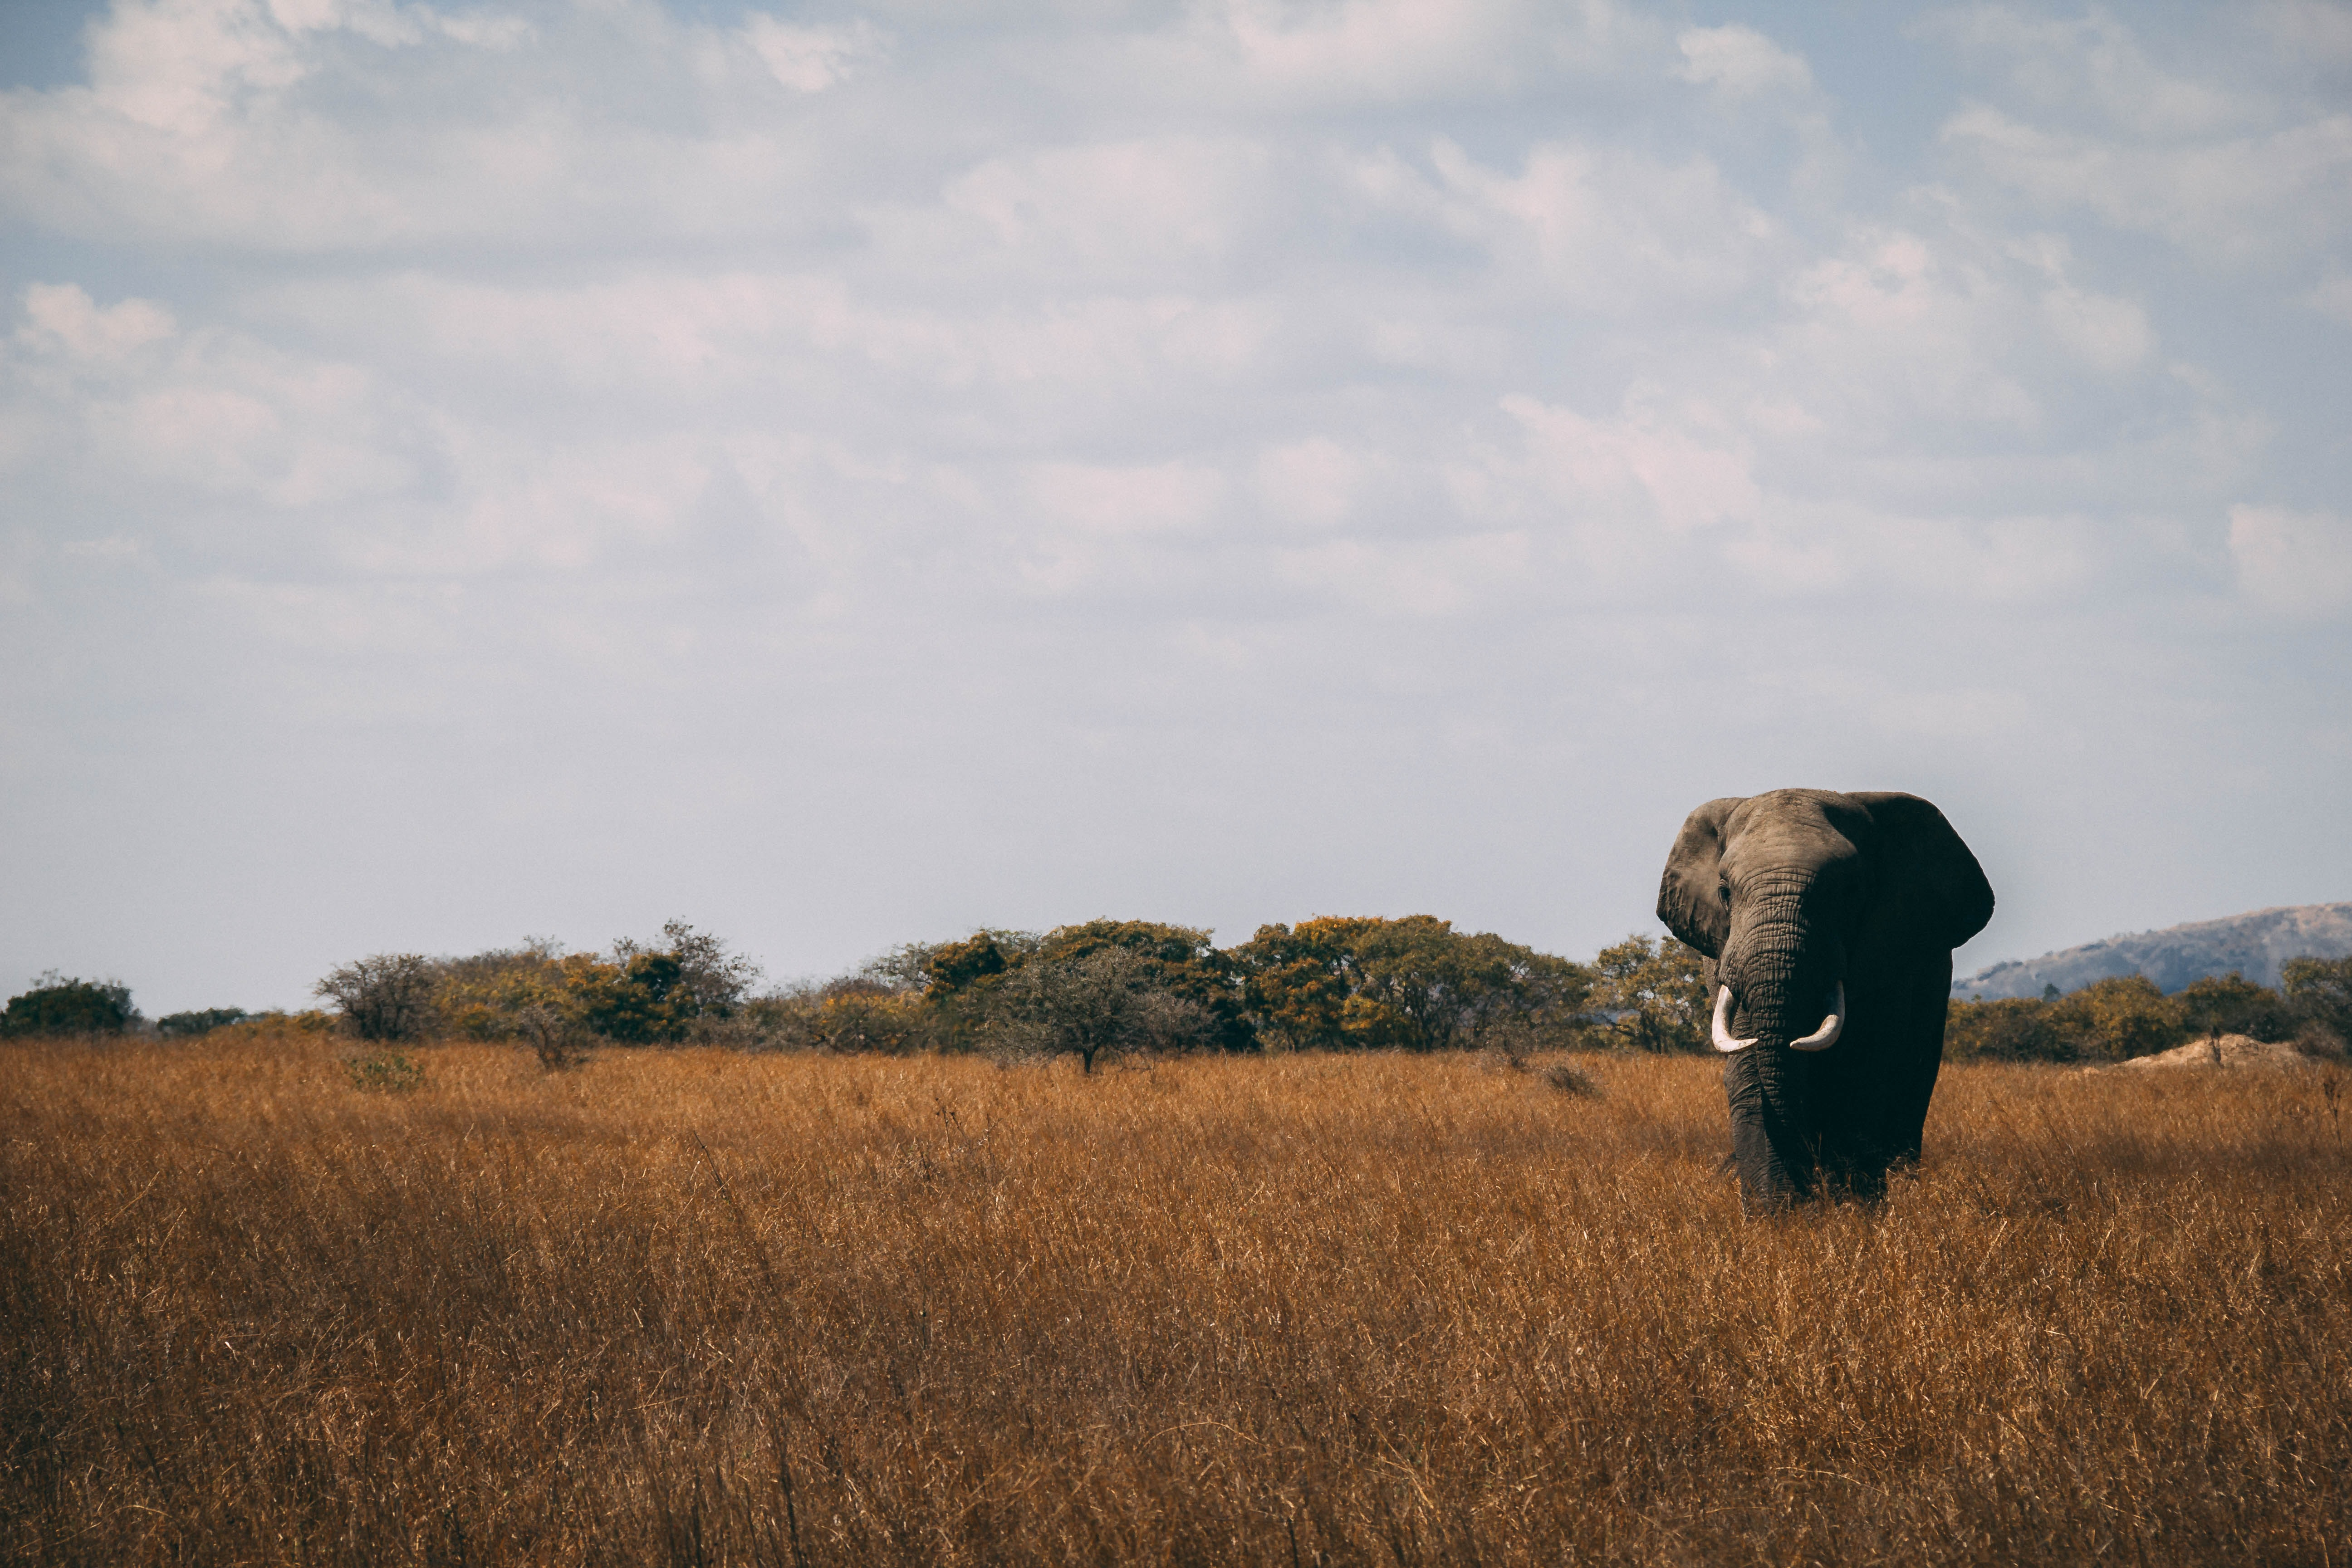 photo of gray elephant on grass